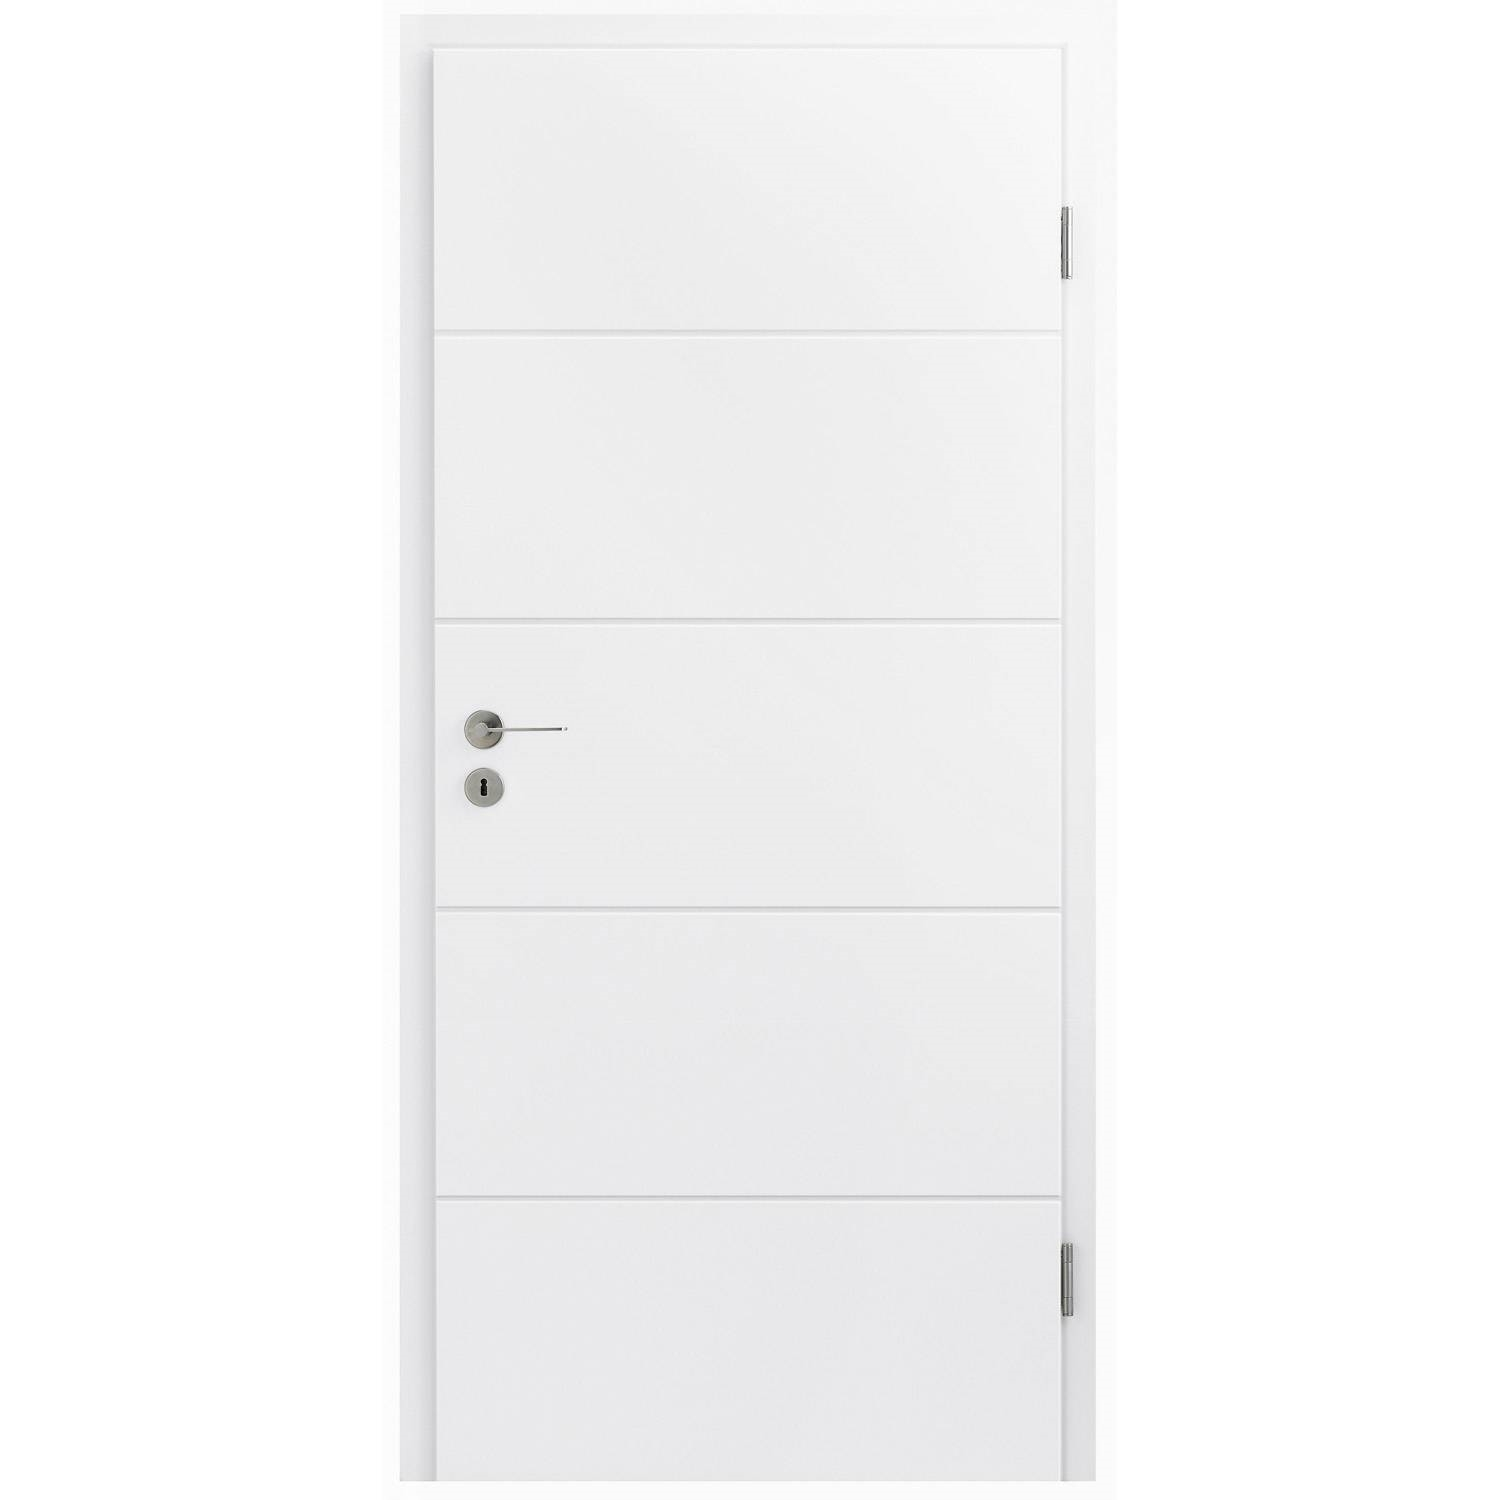 Le porte per interni leroy merlin porte interne guida for Deco porte leroy merlin